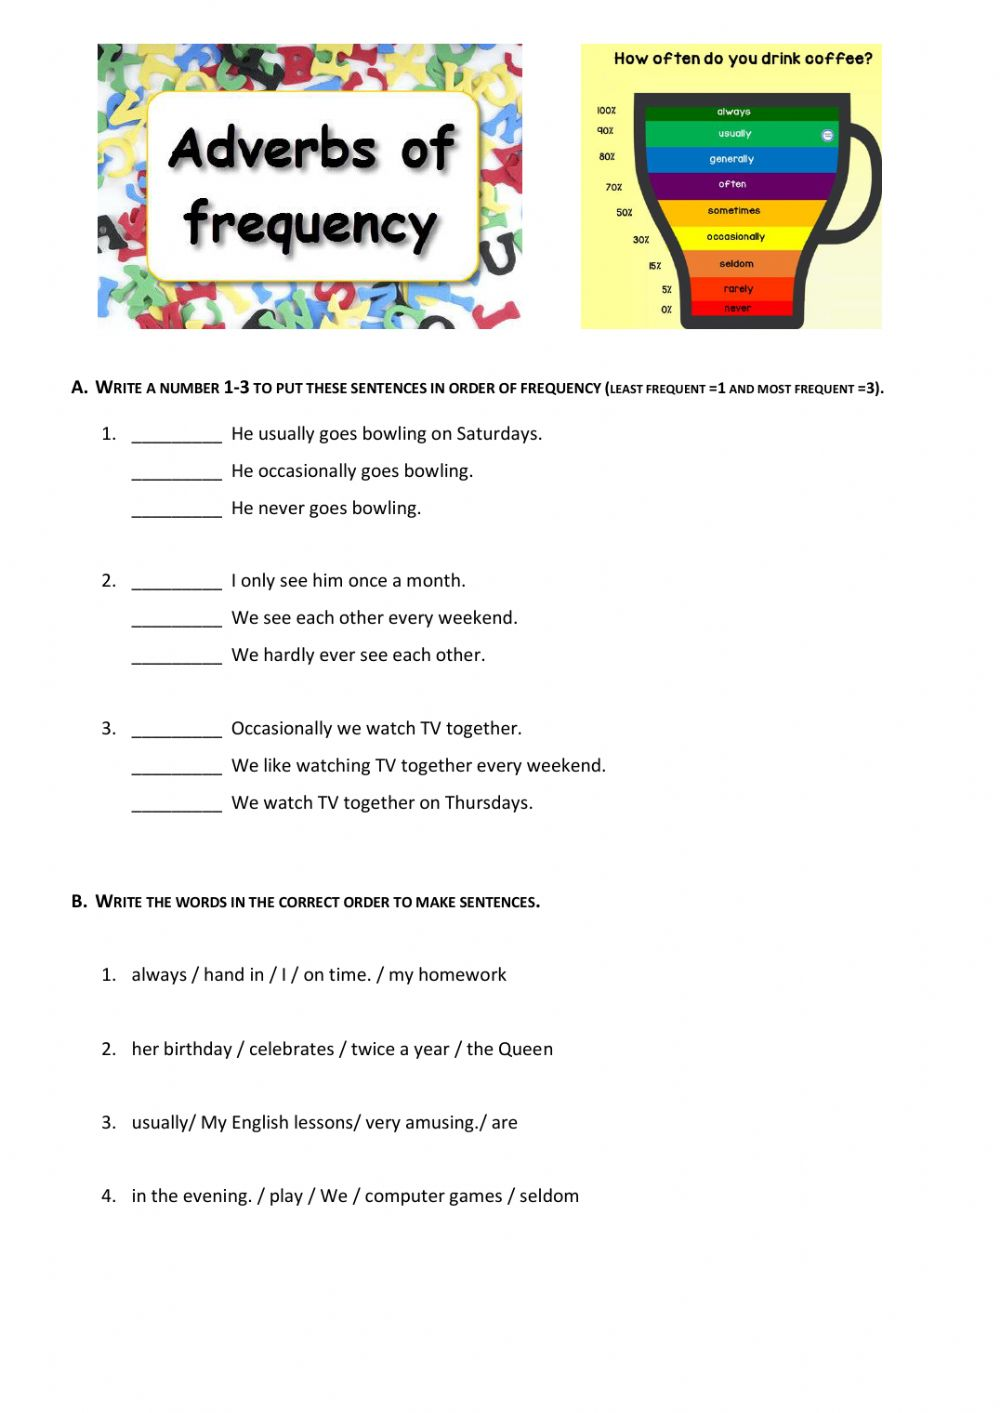 hight resolution of Adverbs of frequency online exercise for 7th grade